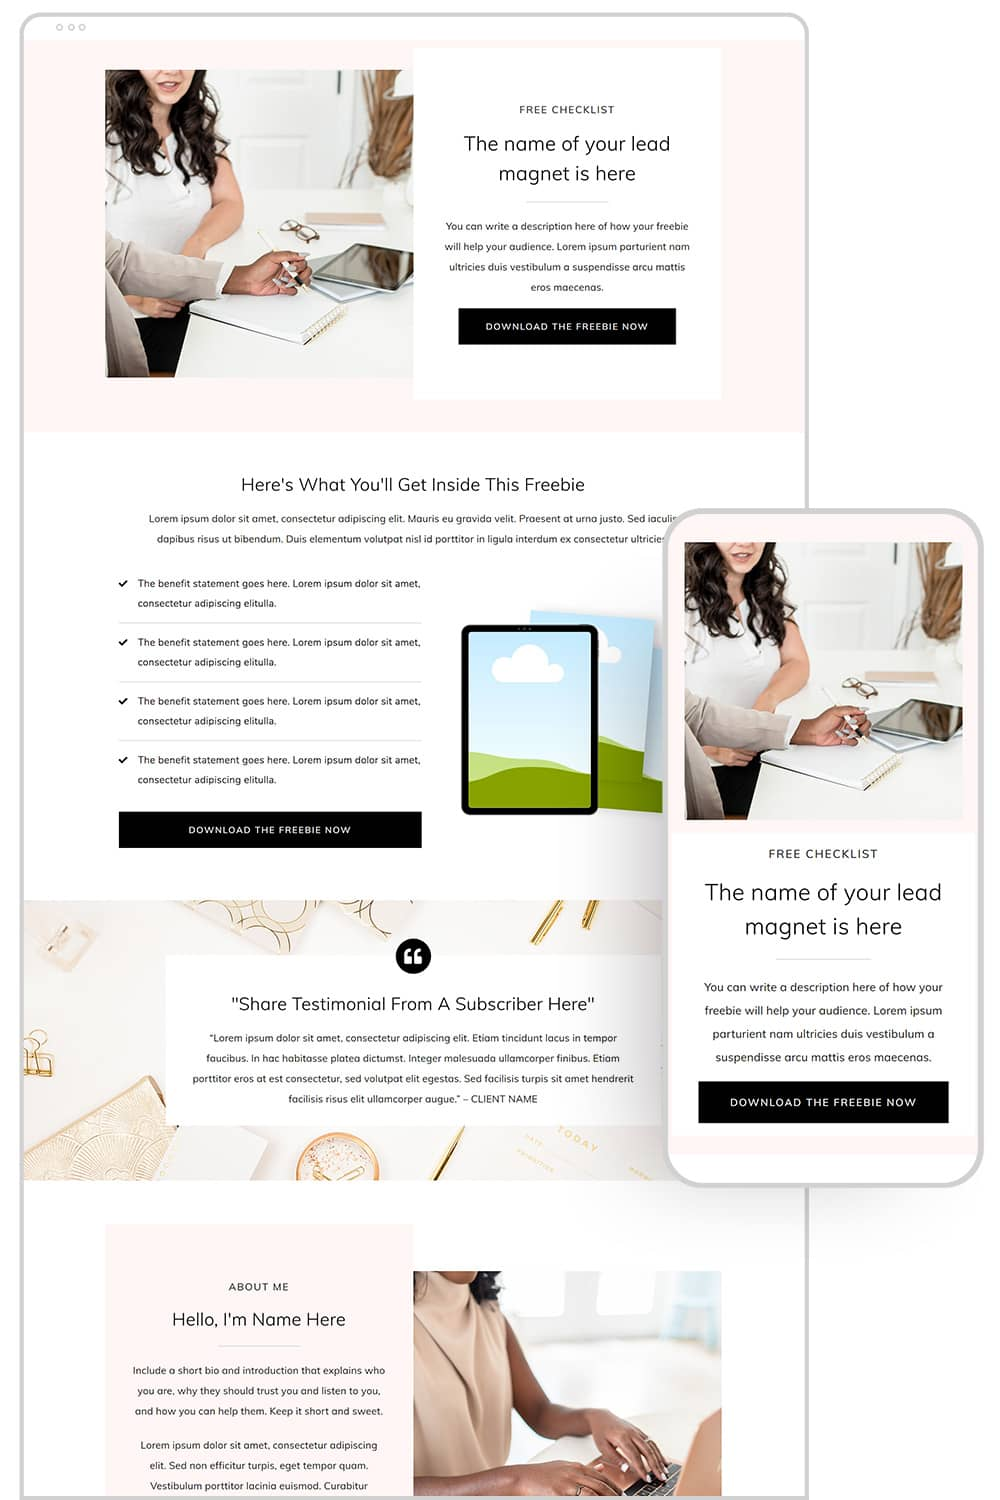 mockup-chicshop-funnel-opt-in-long